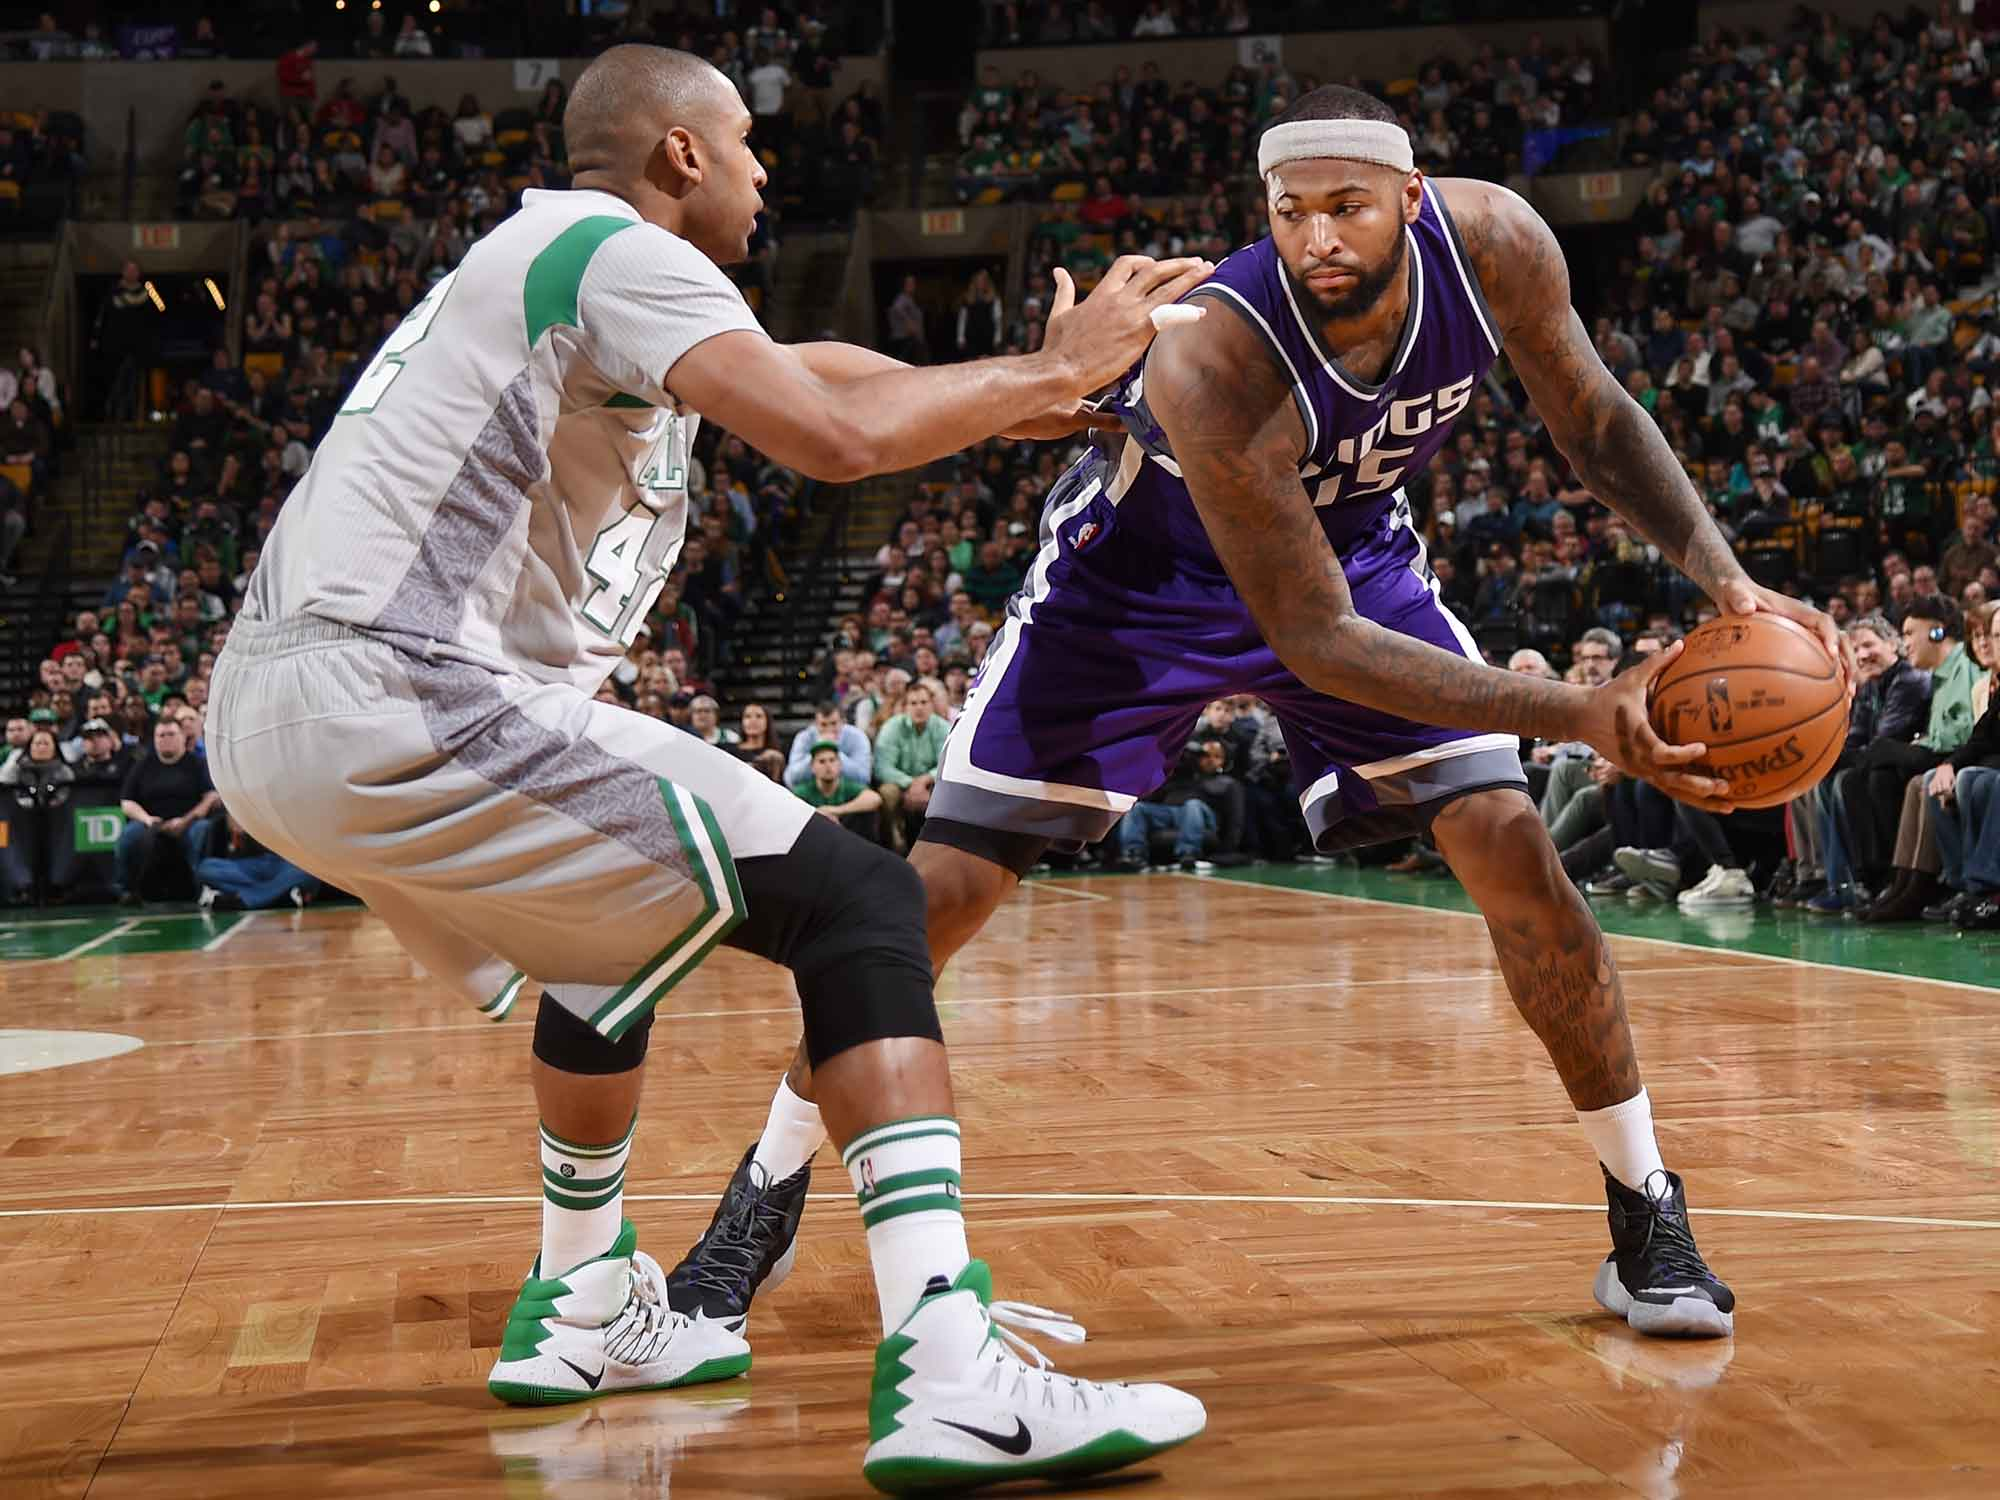 DeMarcus Cousins and Al Horford